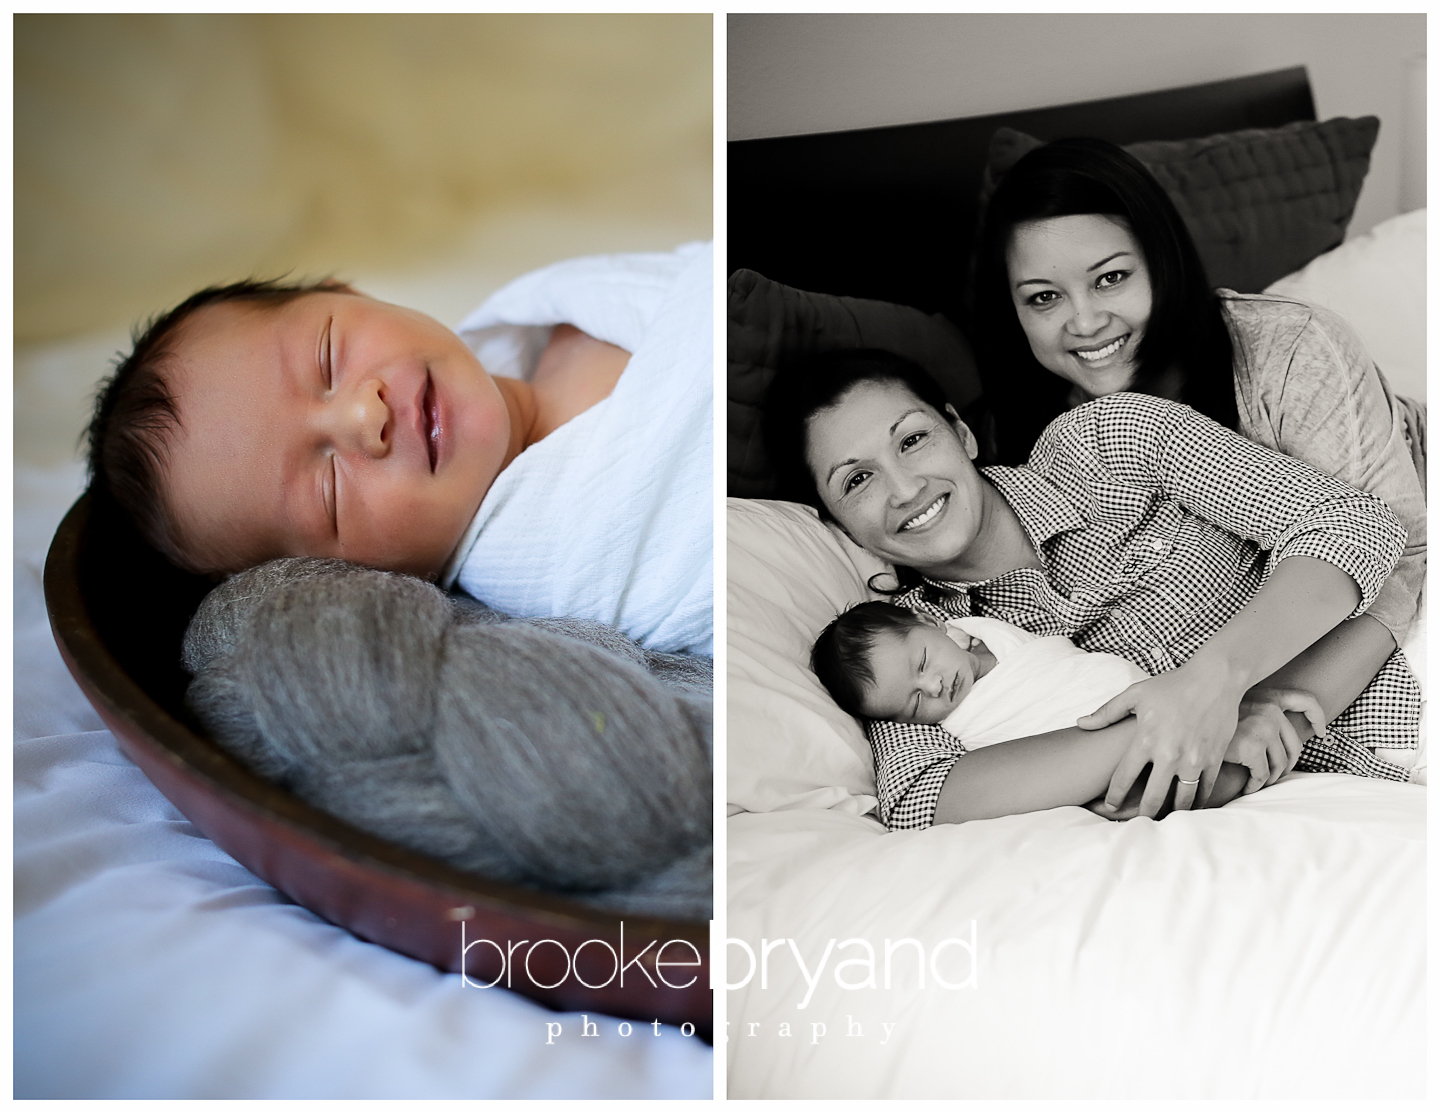 Brooke-Bryand-Photography-San-Francisco-Family-Photographer-2-up-cullen-4.jpg